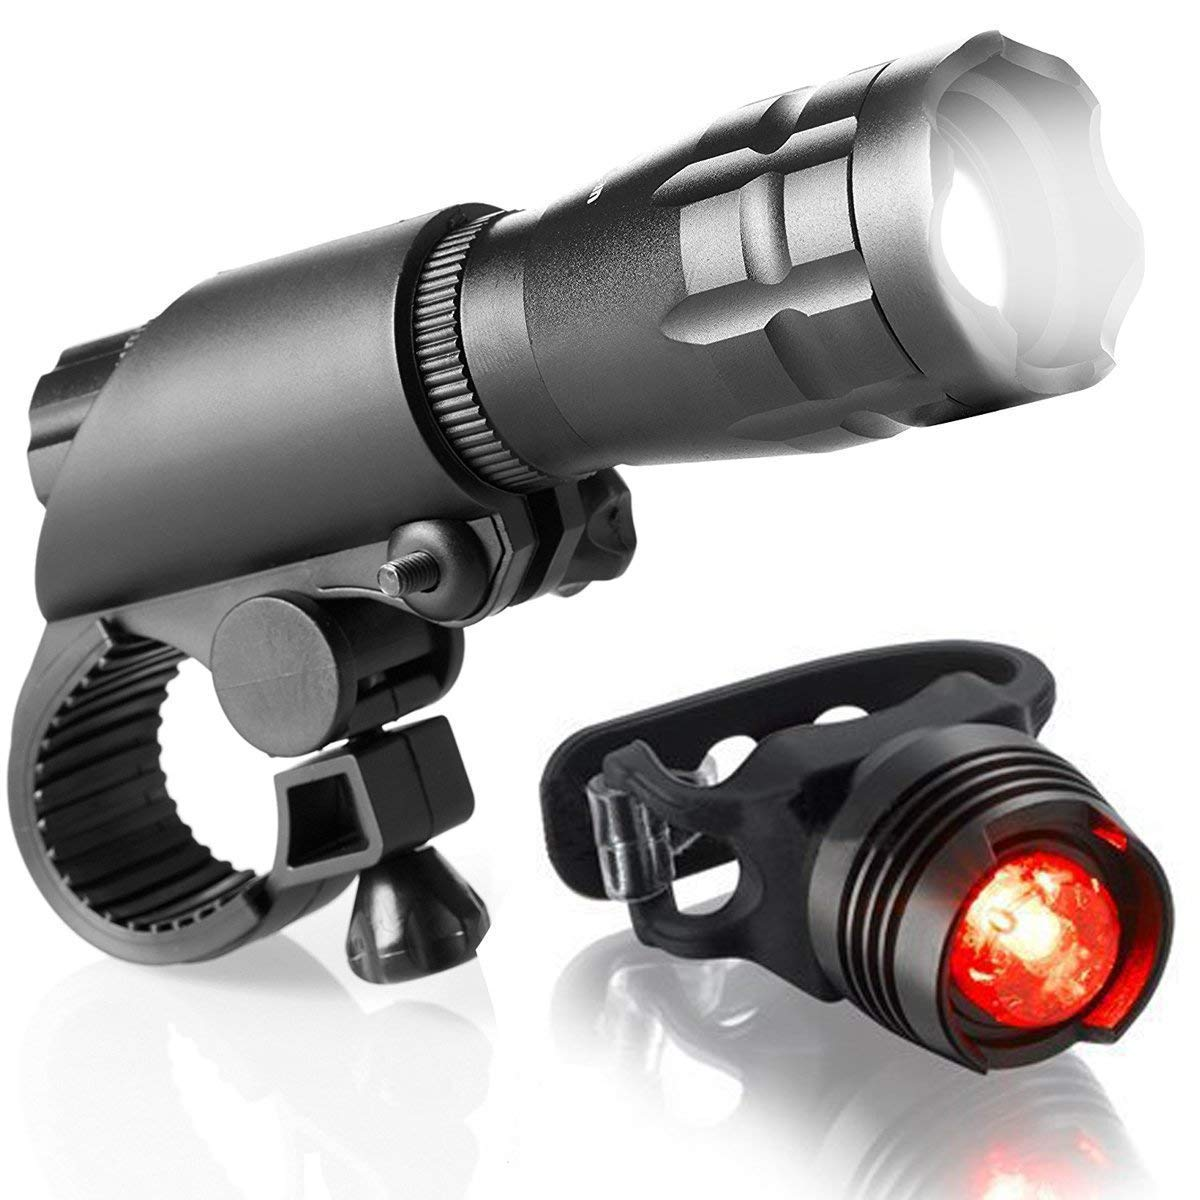 ZOUQILAI LED Bike Light Set Powerful Bright Front Lights Easy to Install for Kids Men Women Road Cycling Safety Flashlight Bicycle Headlight